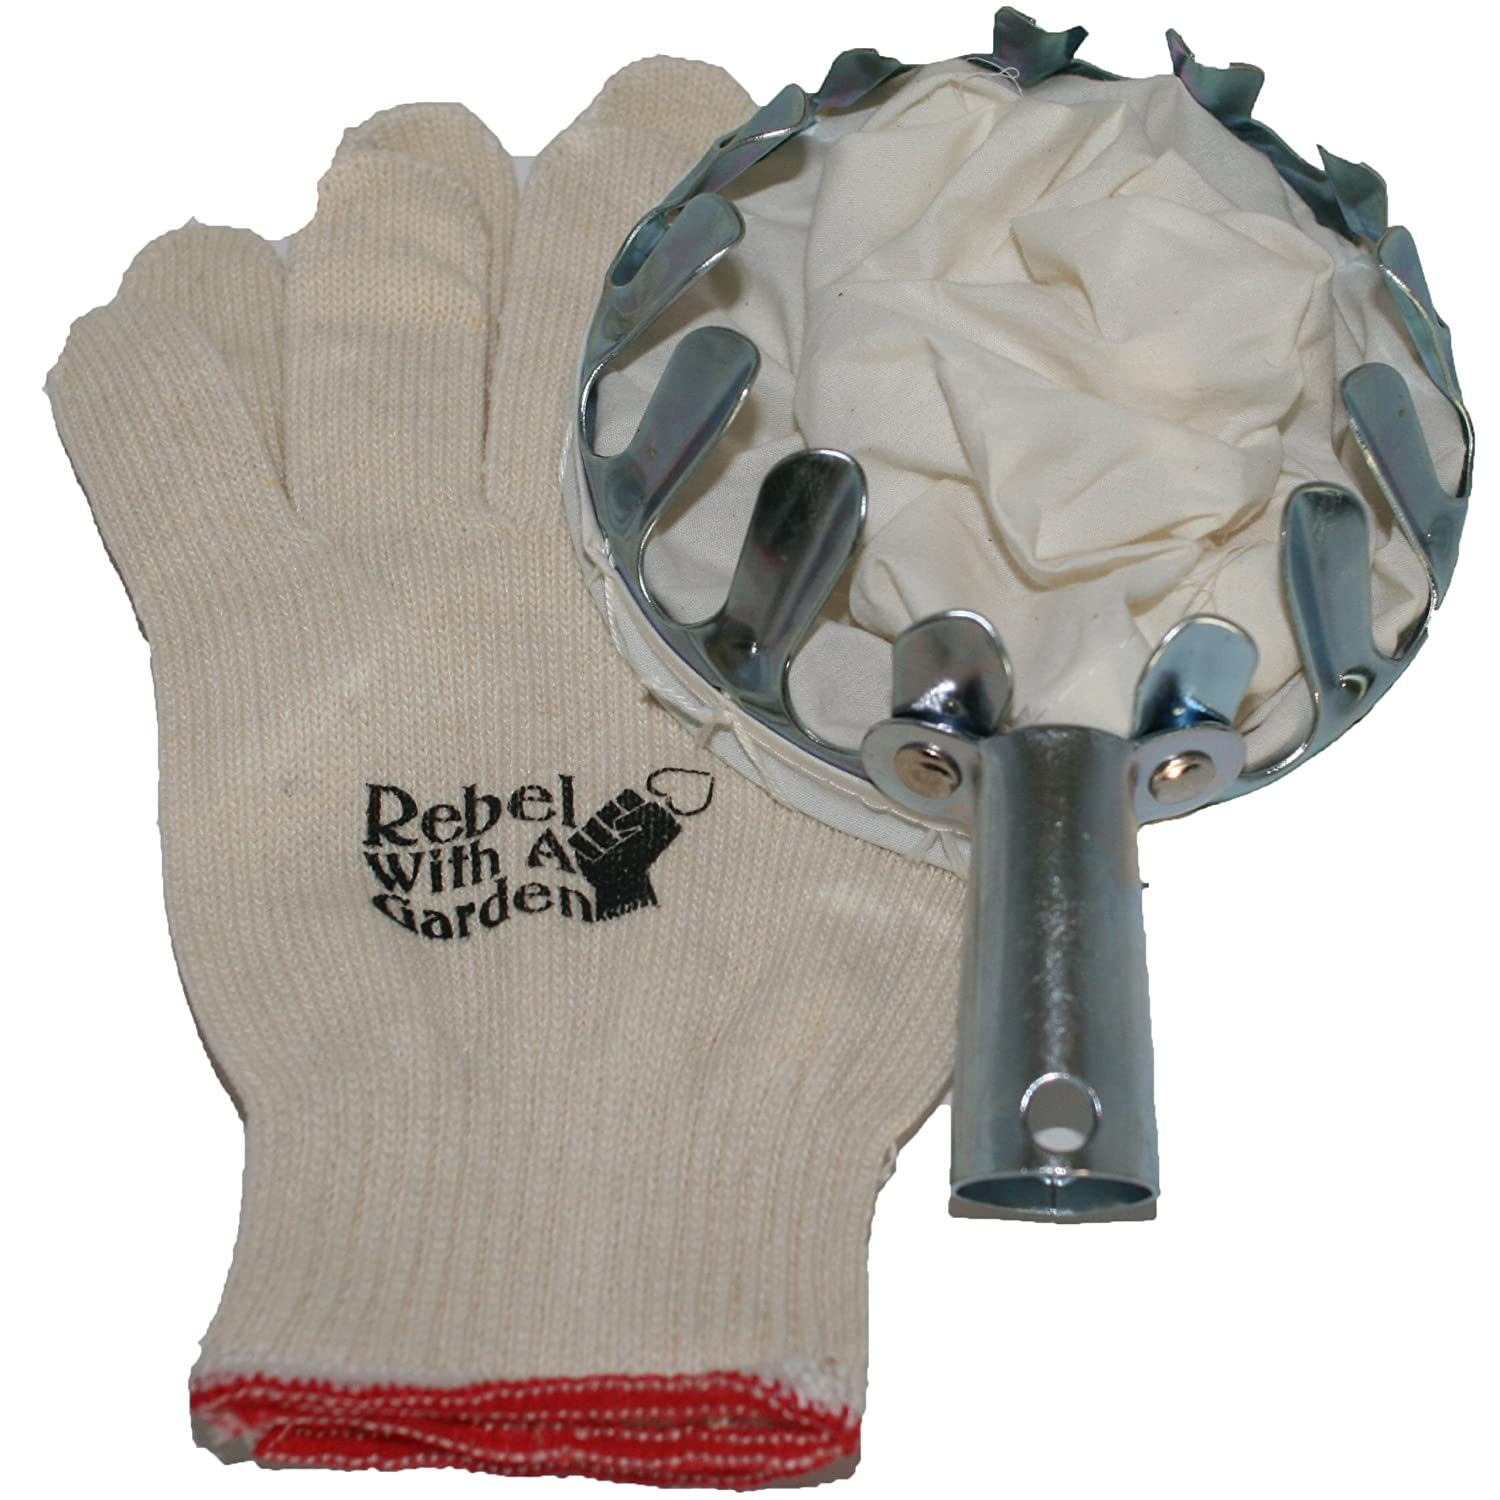 Long Armed Rebel Fruit Picker Basket Tool for picking Apples, Peaches, Pears, Plums by Rebel With A Garden